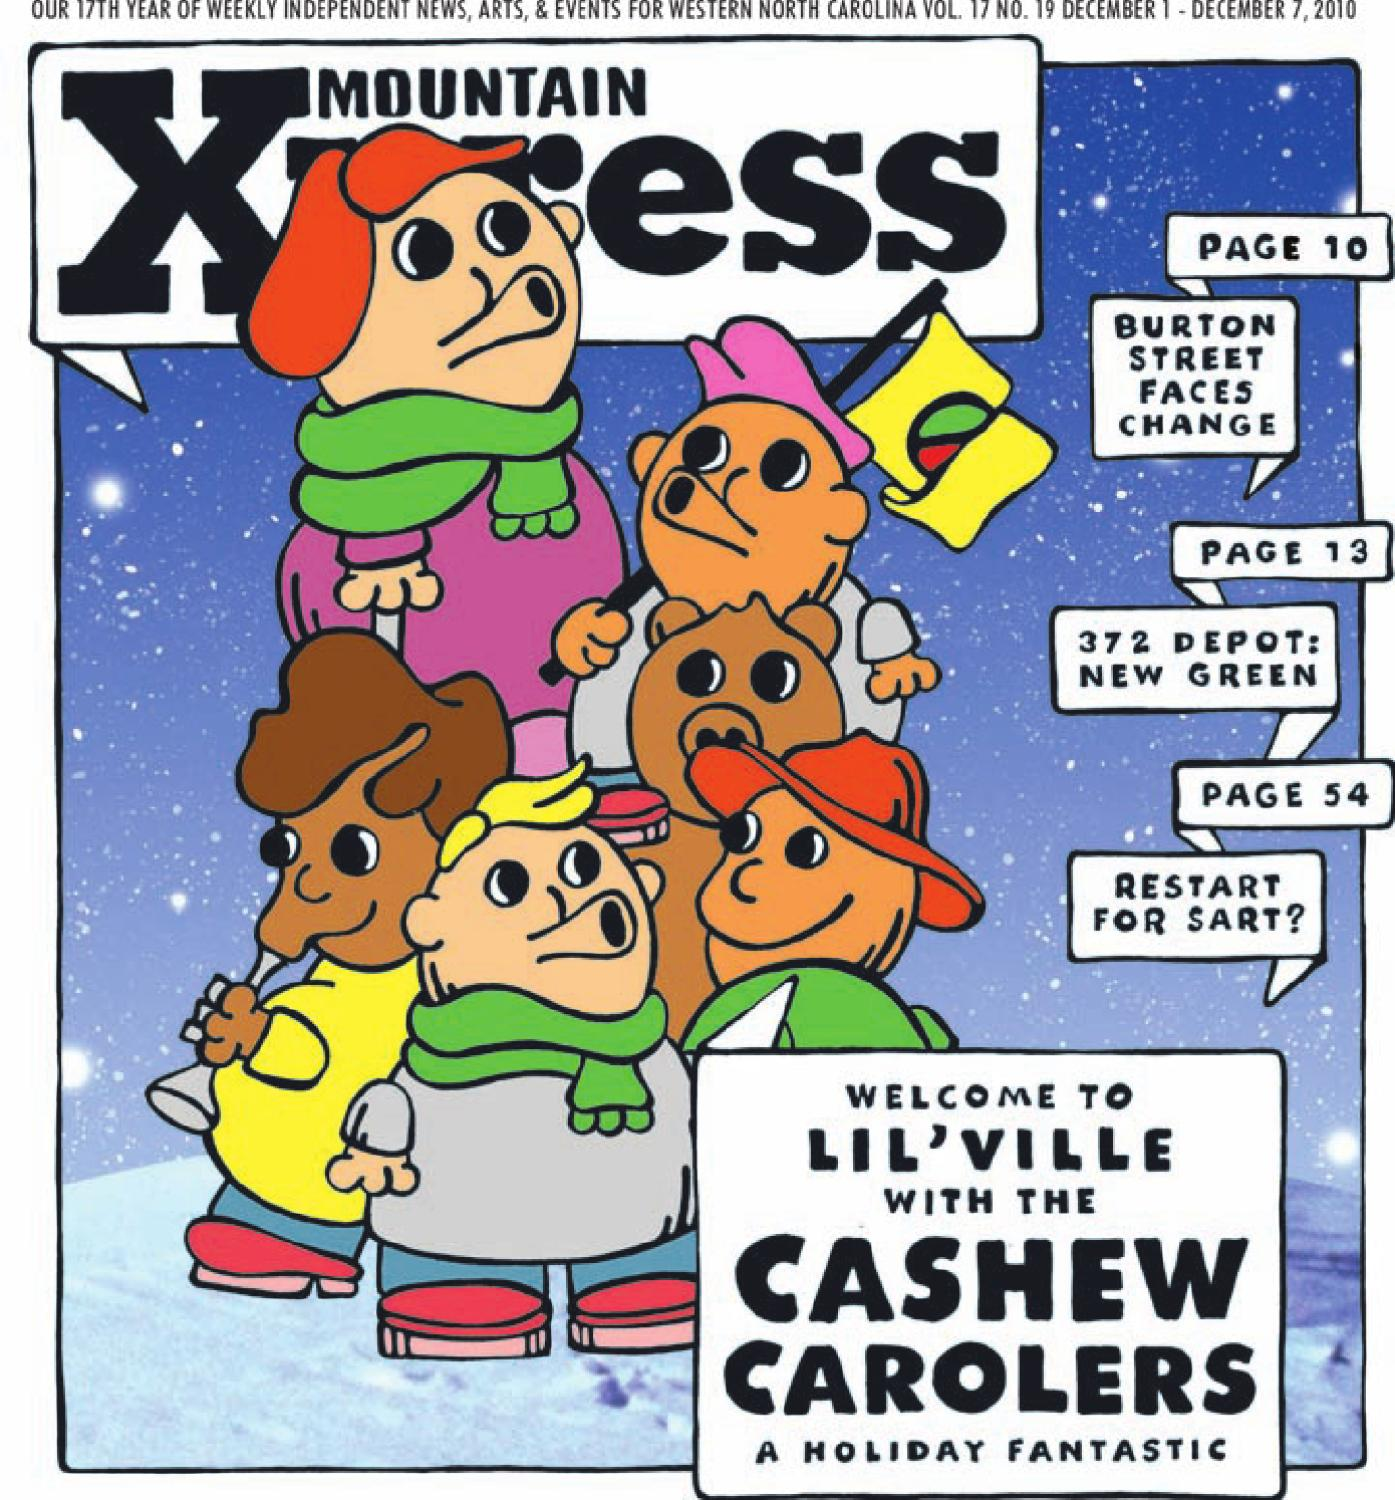 a2b30a45d17ae Mountain Xpress, December 1 2010 by Mountain Xpress - issuu